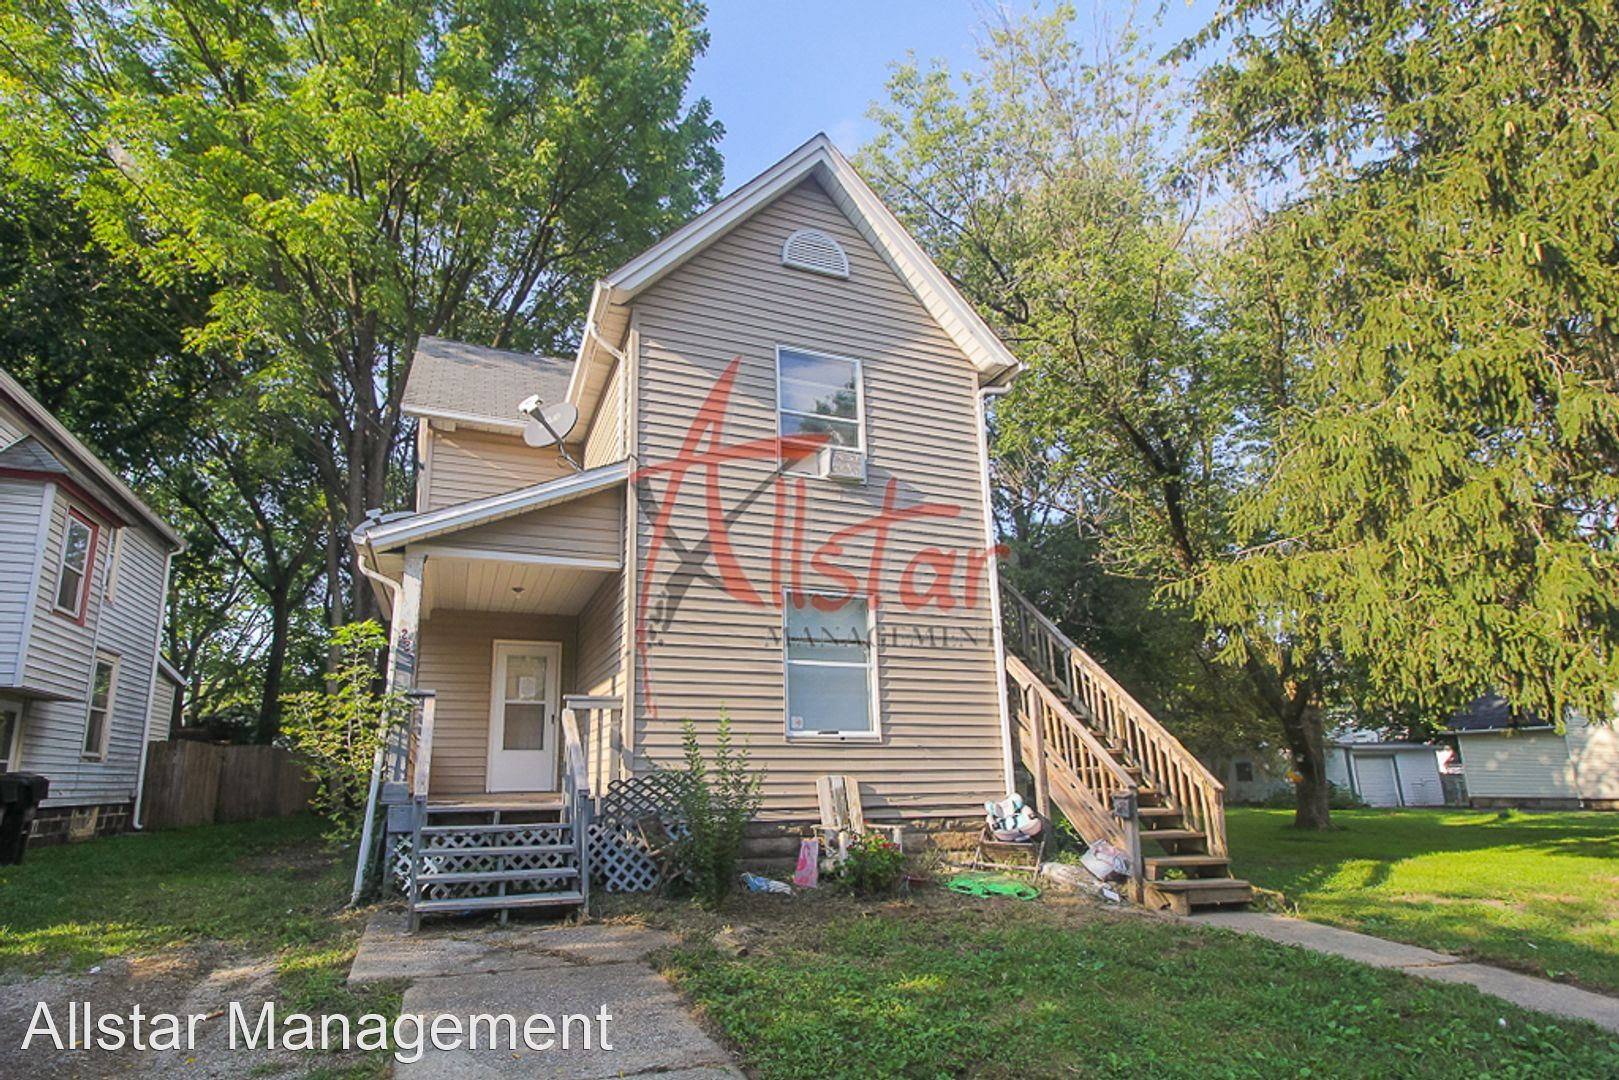 1-Bedroom House In Gates